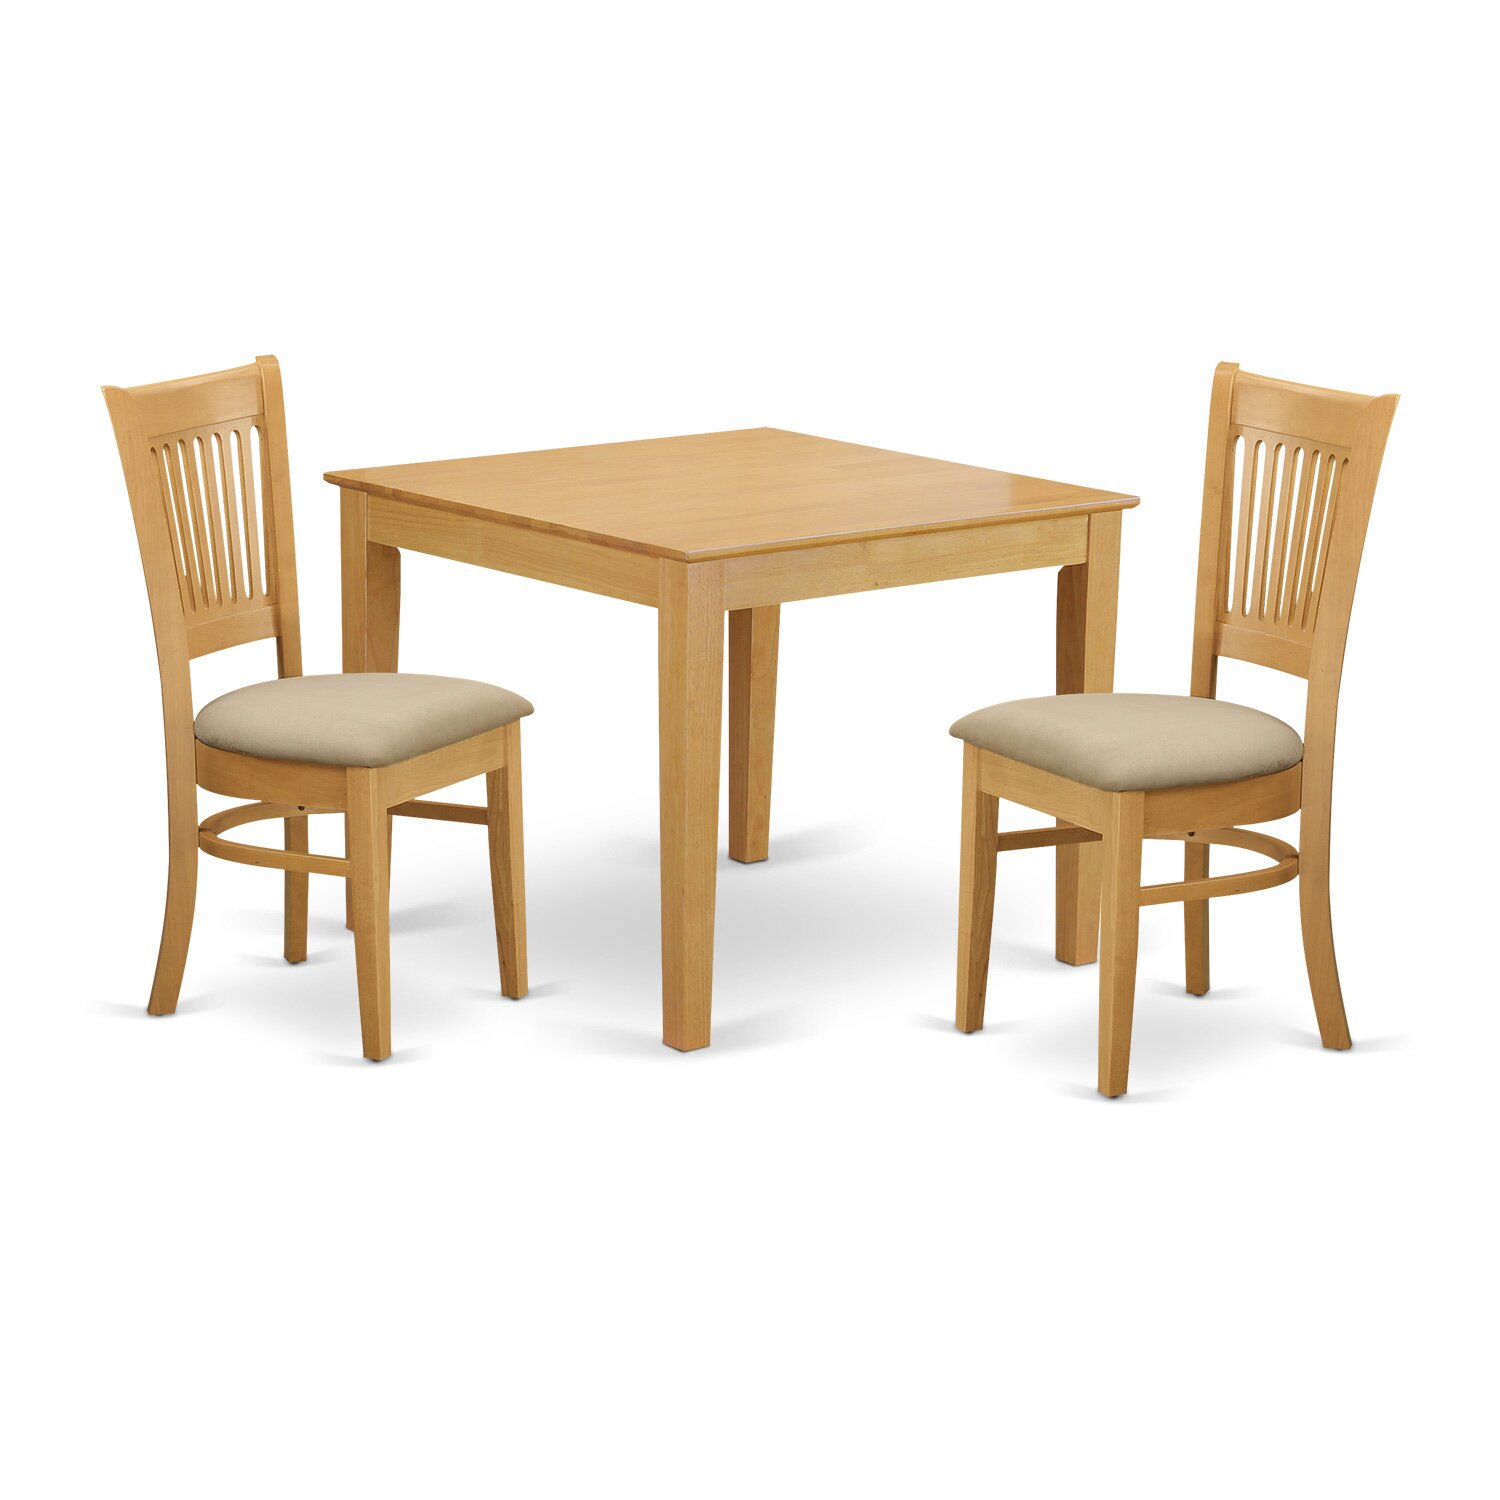 East west oxford 3 piece dining set wayfair for 3 piece dining room set